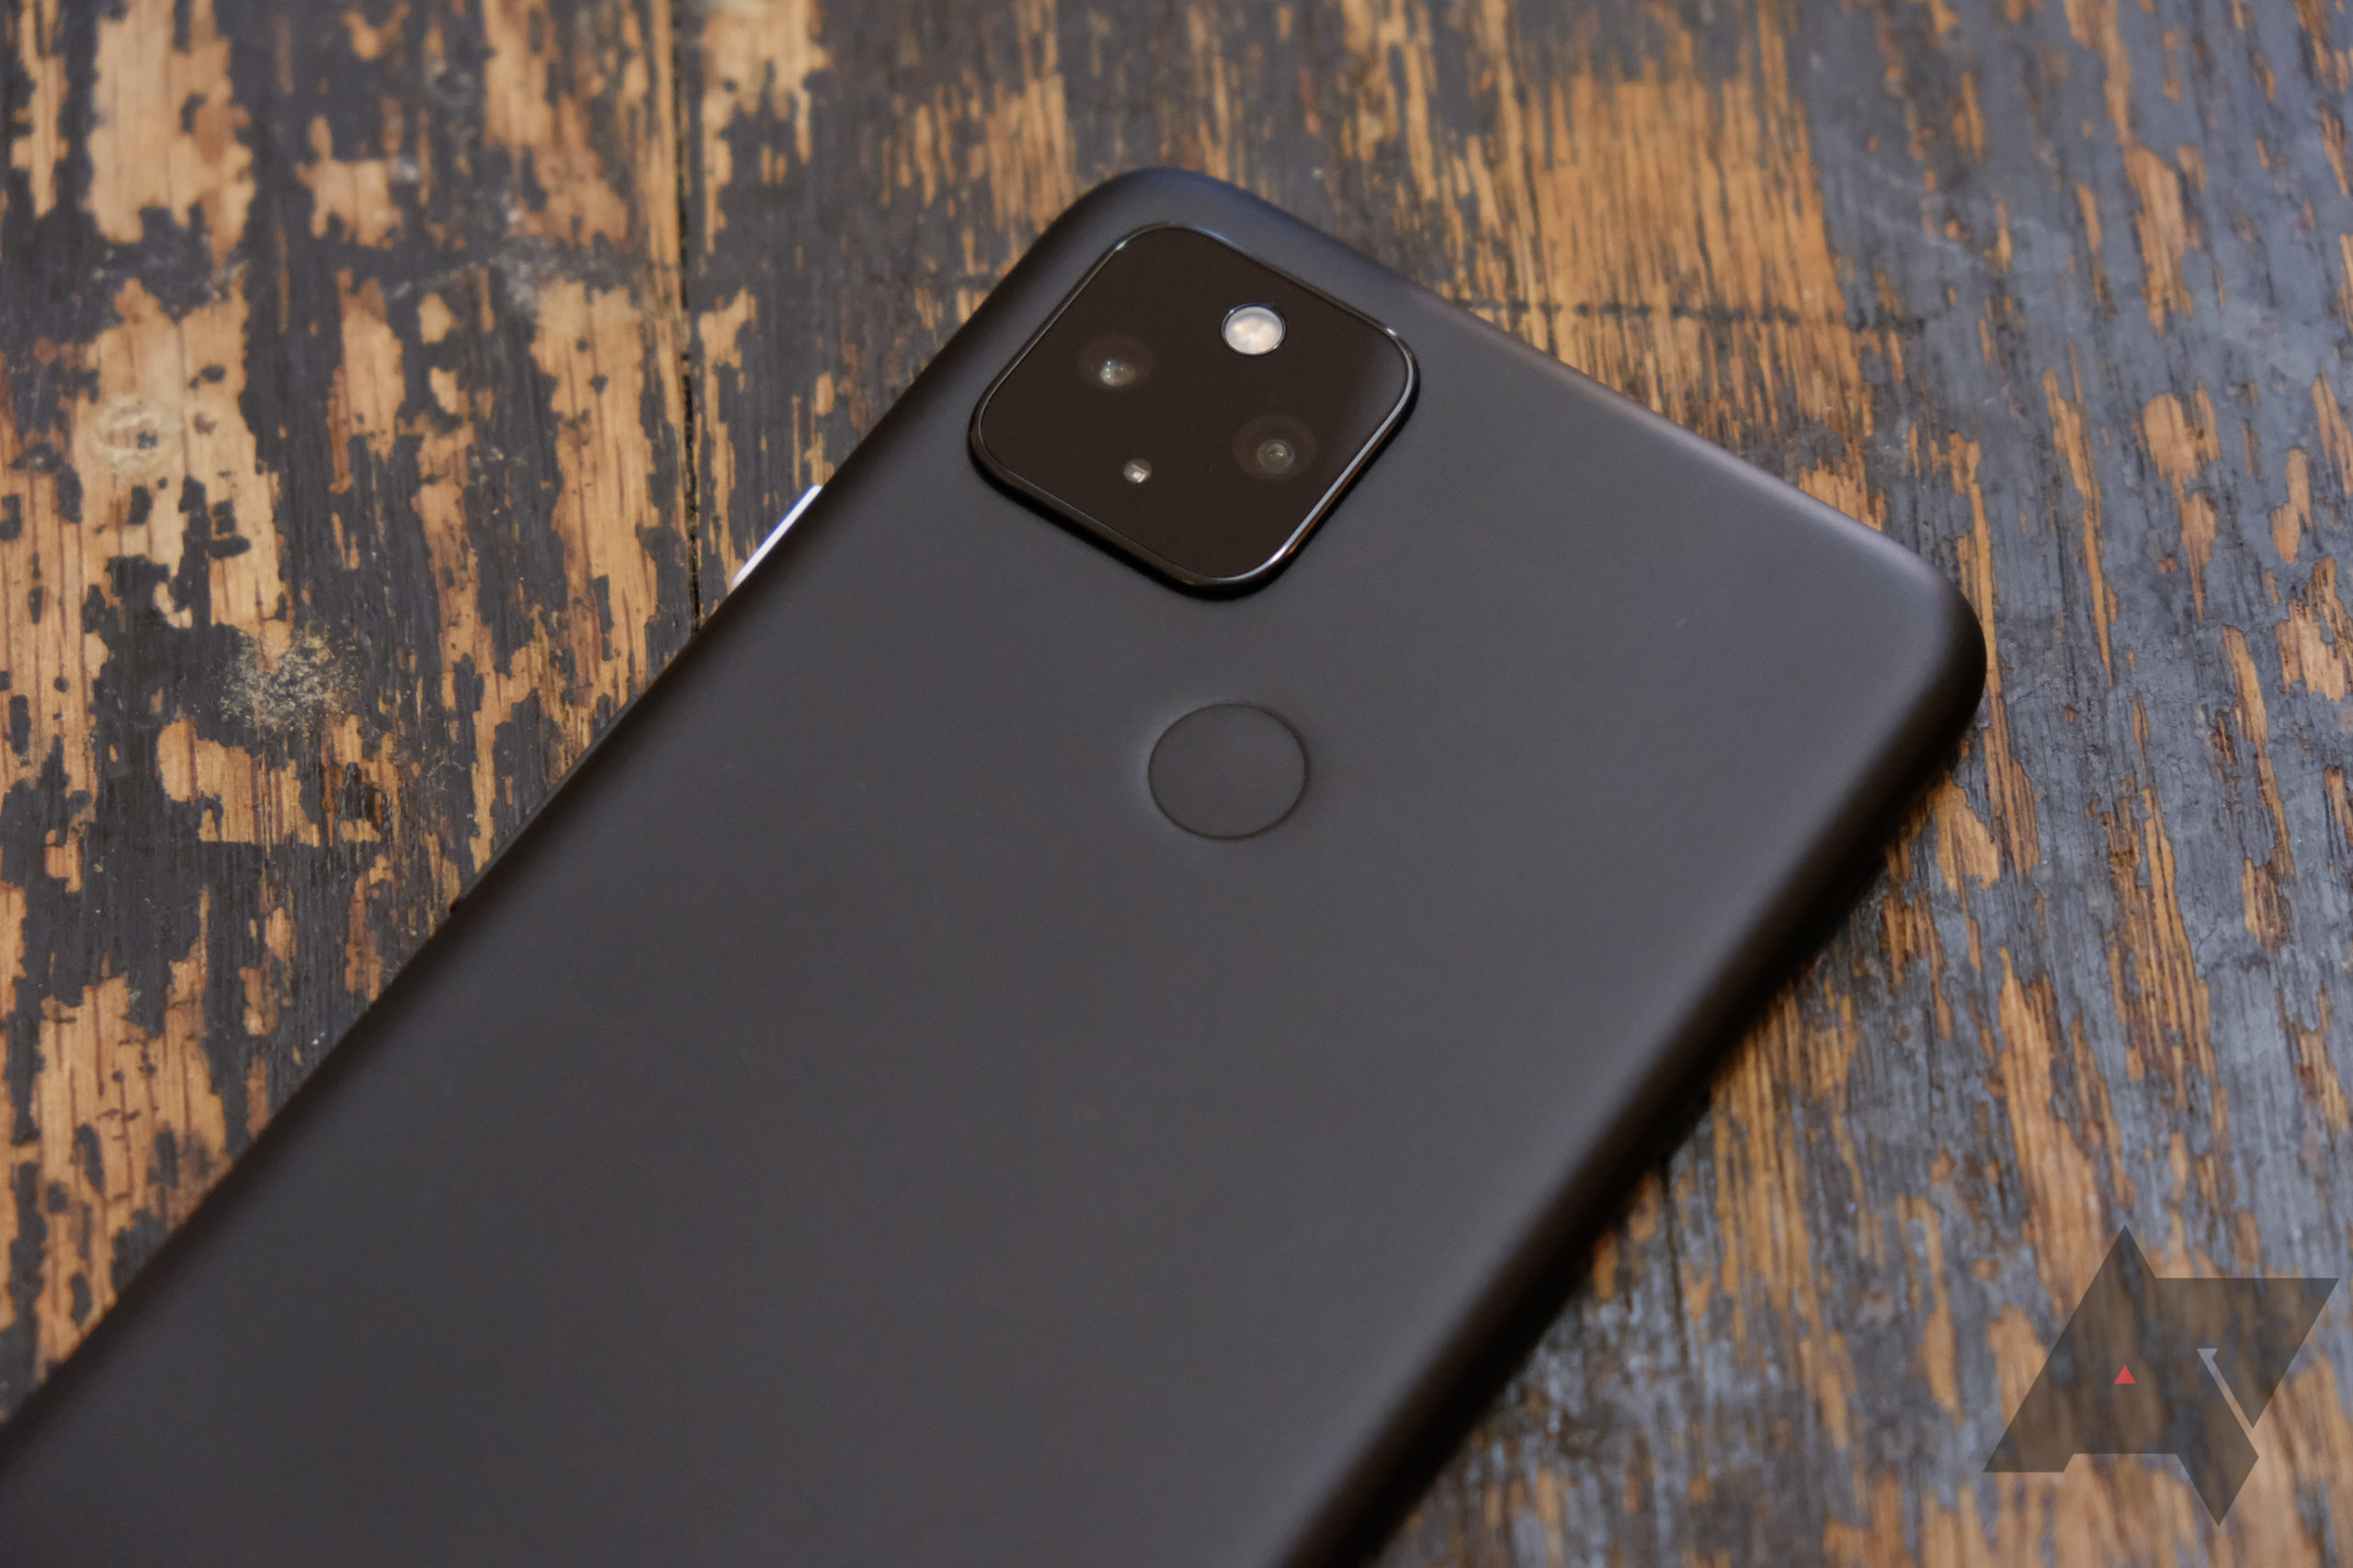 androidpolice.com - The Pixel 4a 5G is back down to $460 ($40 off) at multiple retailers